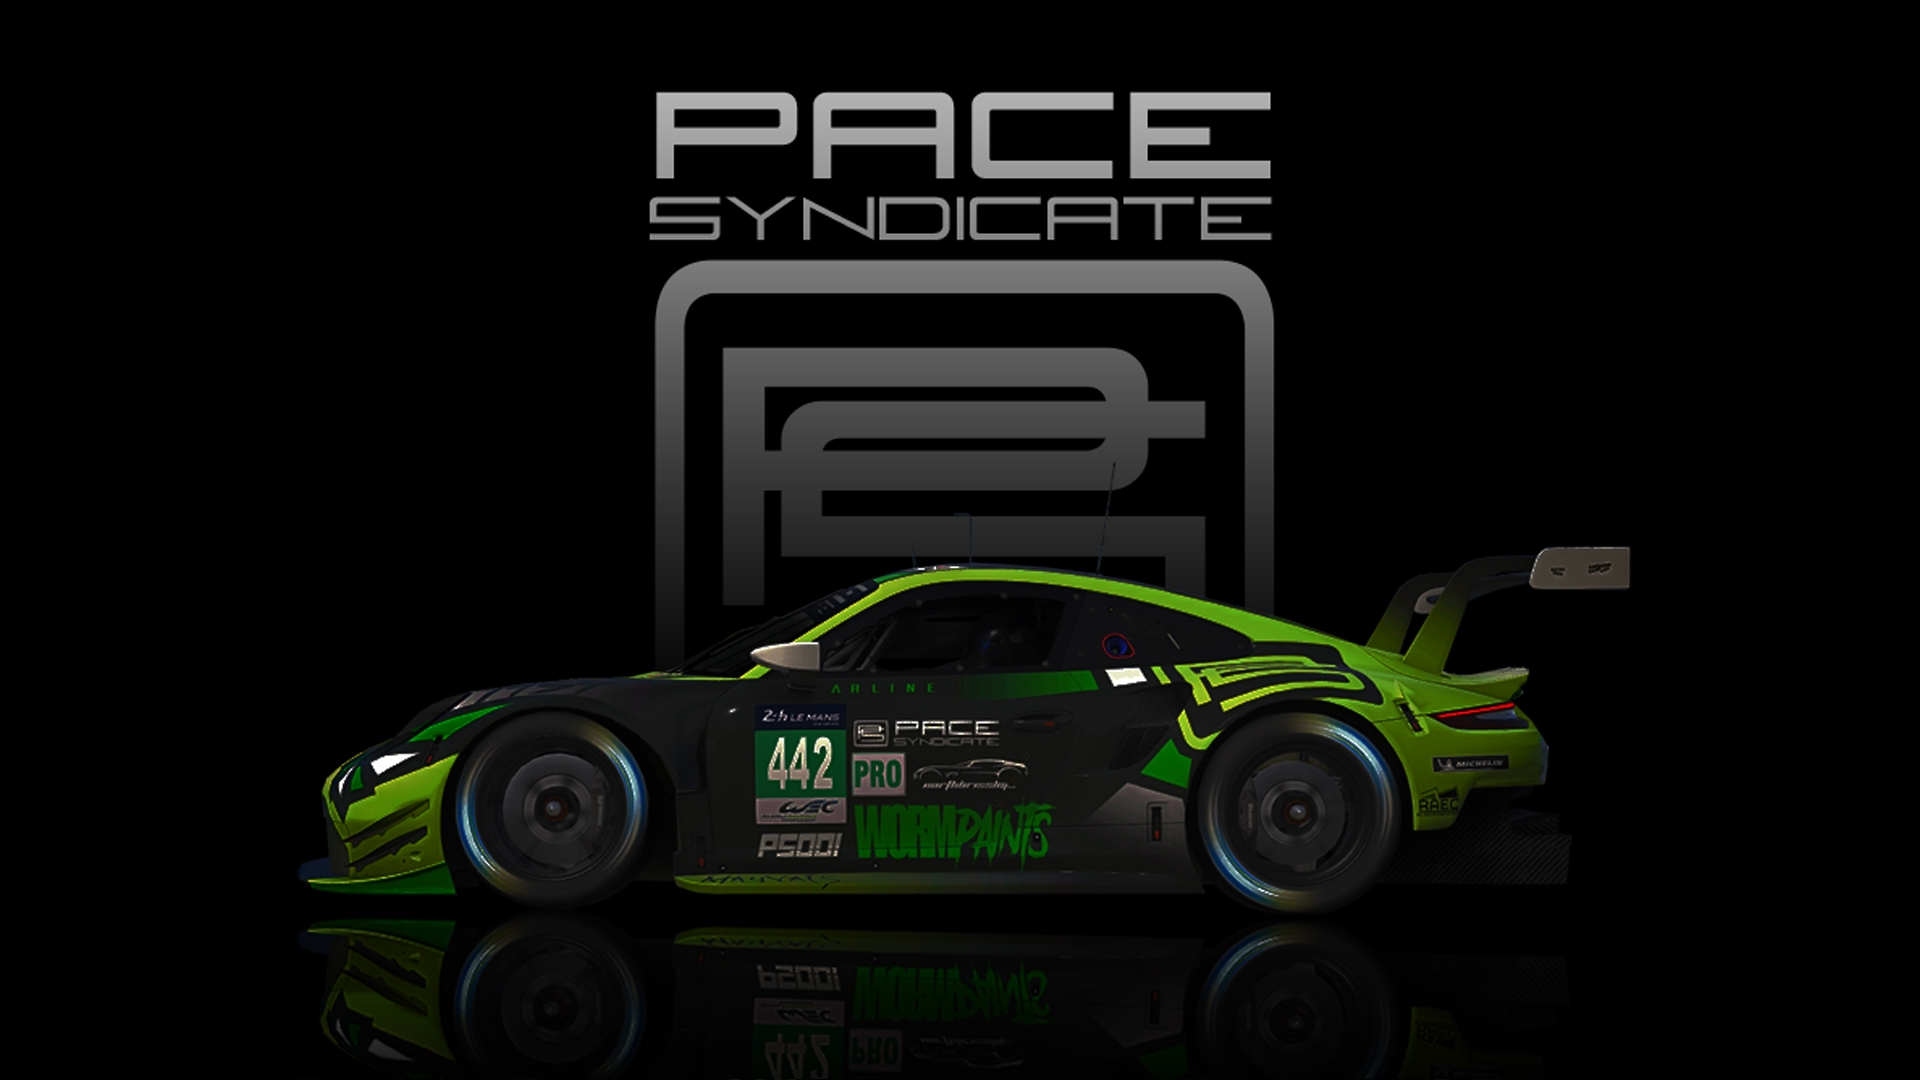 Pace Syndicate